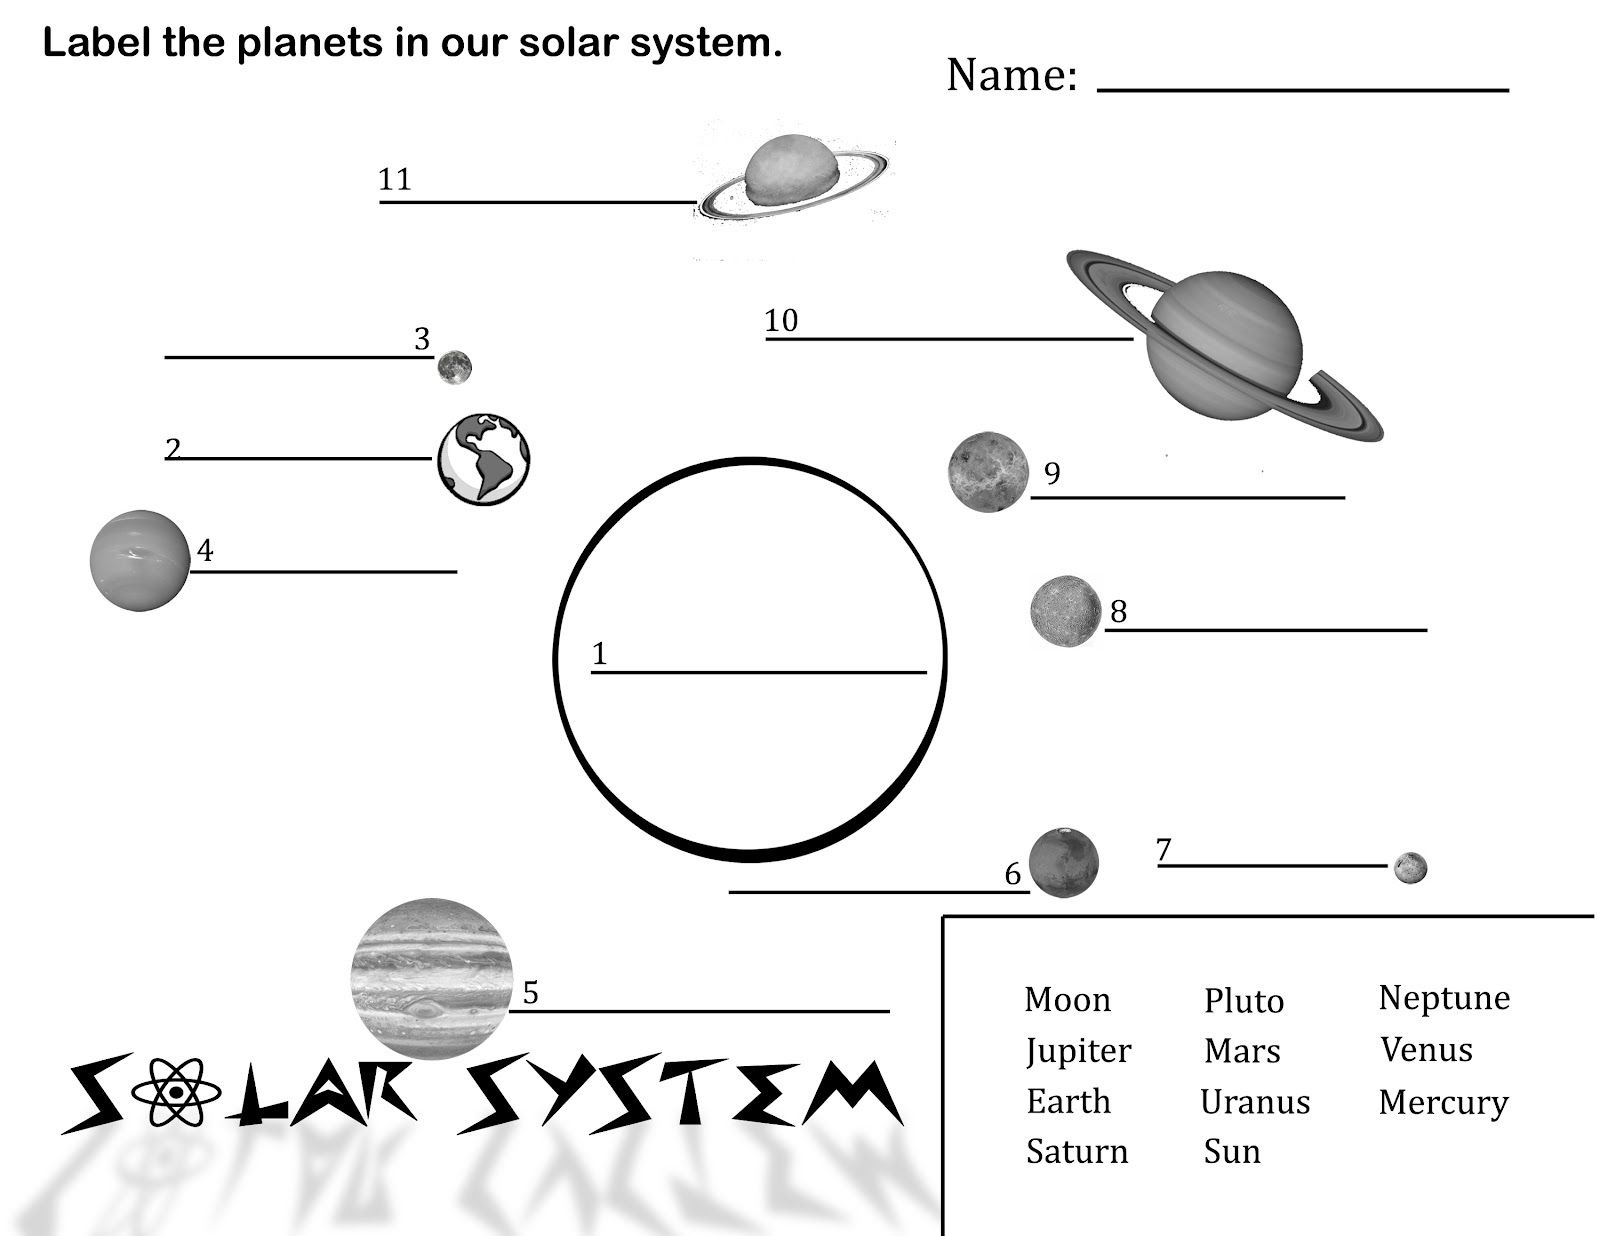 Free Printable Solar System Coloring Pages For Kids | Science - Solar System Charts Free Printable